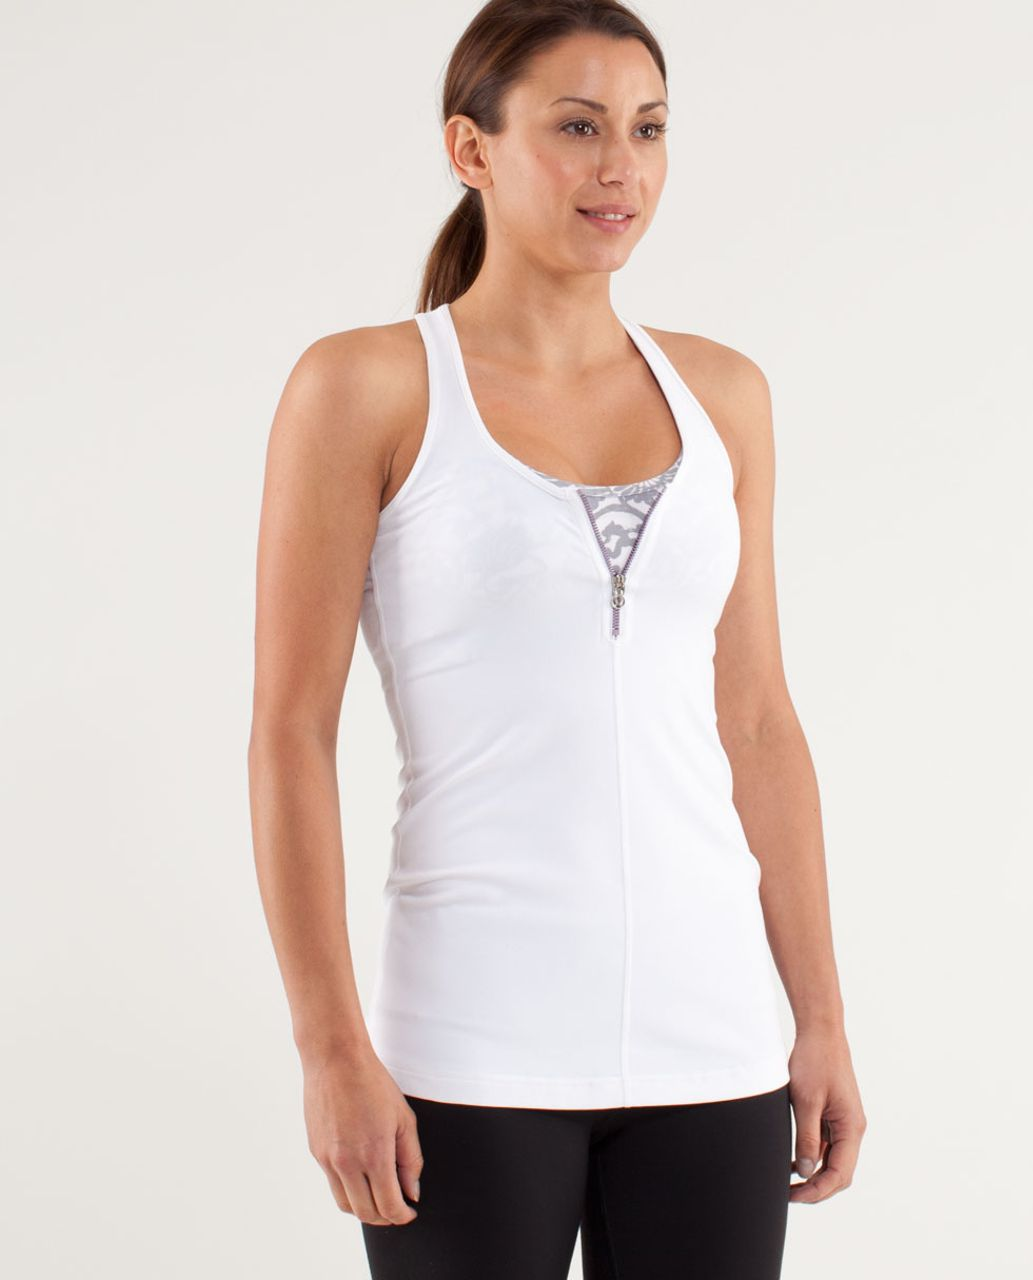 Lululemon Cool Racerback *Zipper - White